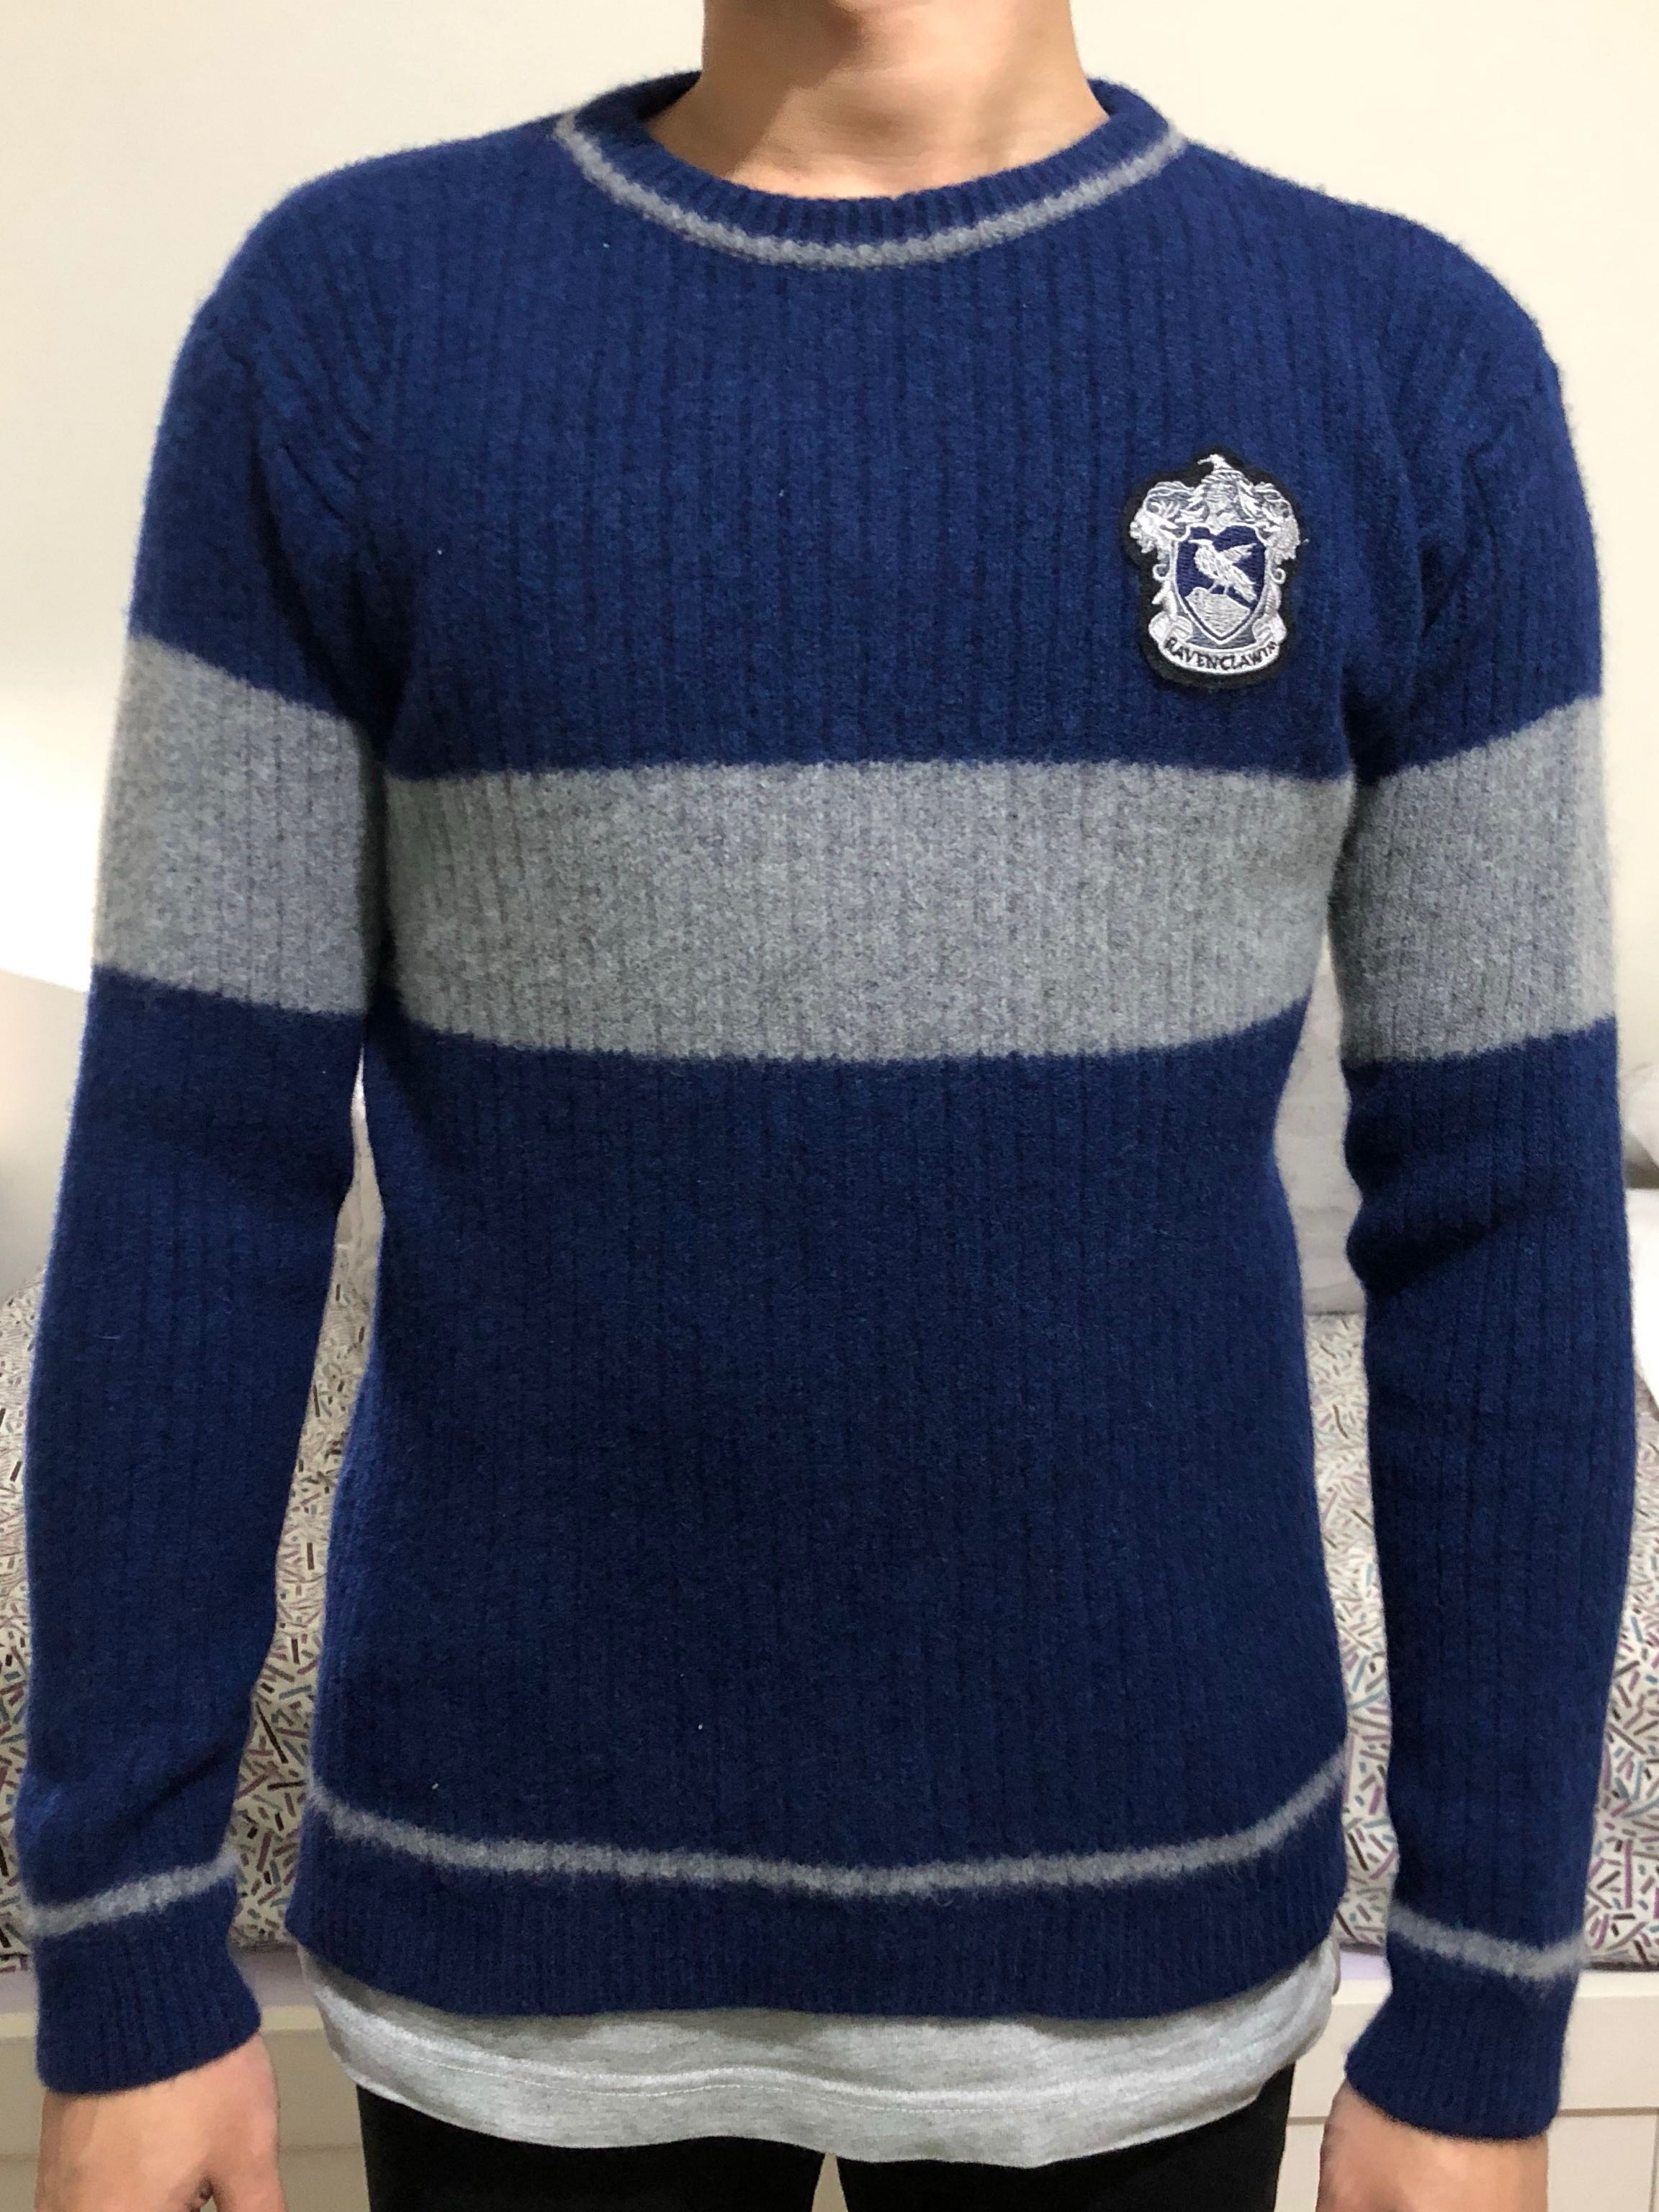 Harry Potter Ravenclaw Knitted Sweater Mens Fashion Clothes